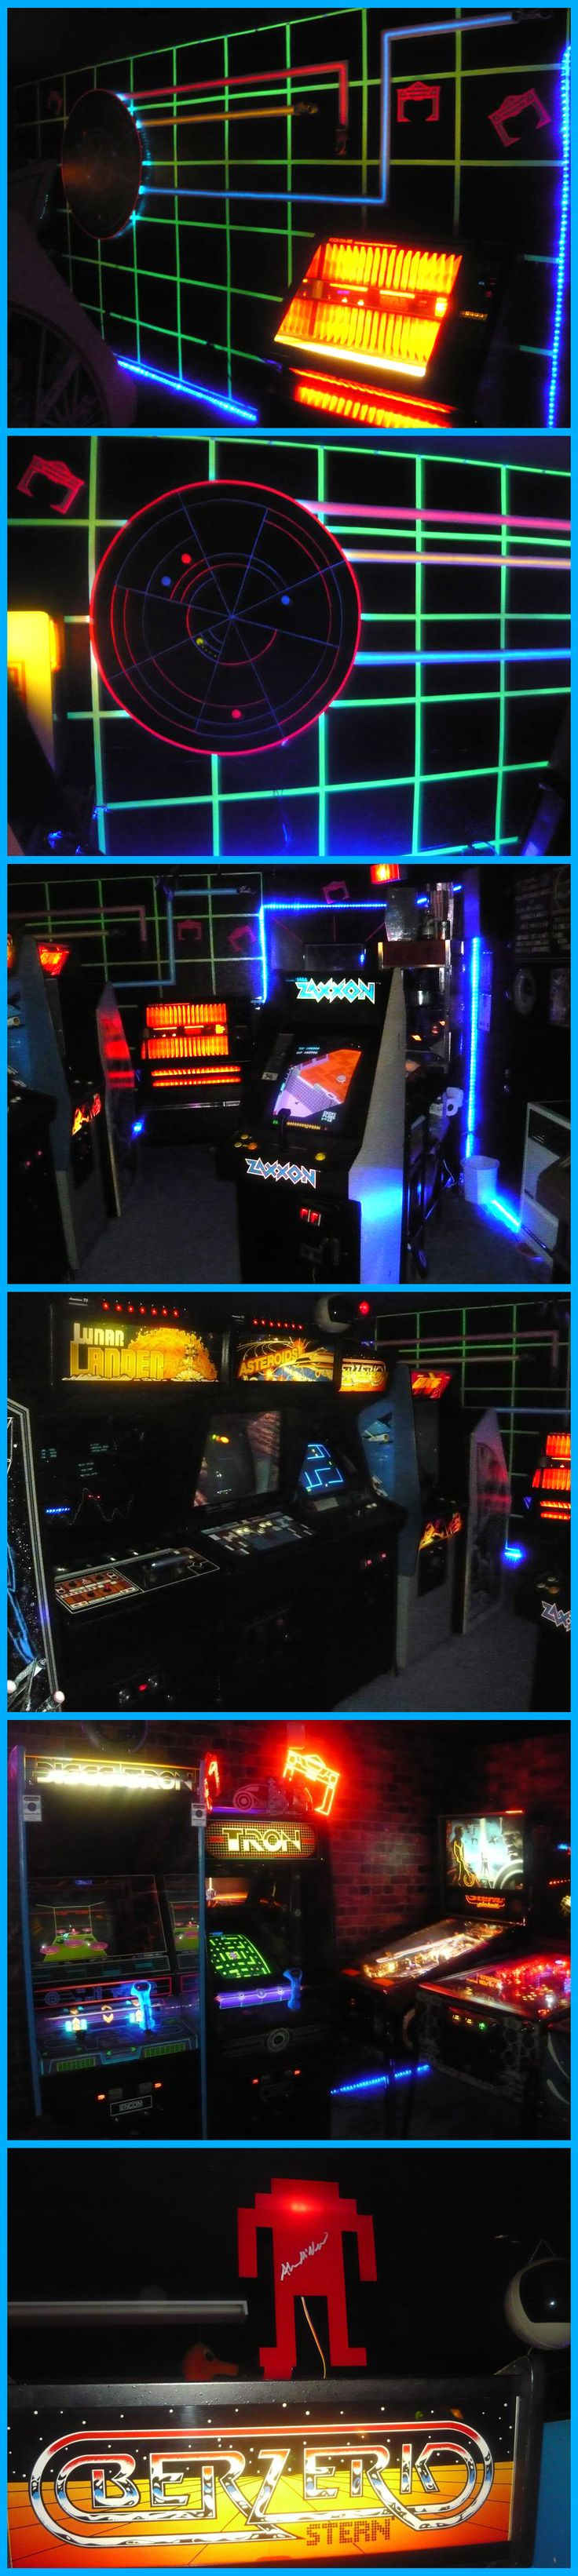 Tron inspired Arcade Gaming Room complete with light cycle wall mural - via SpaceWar on the arcade-museum.com forums